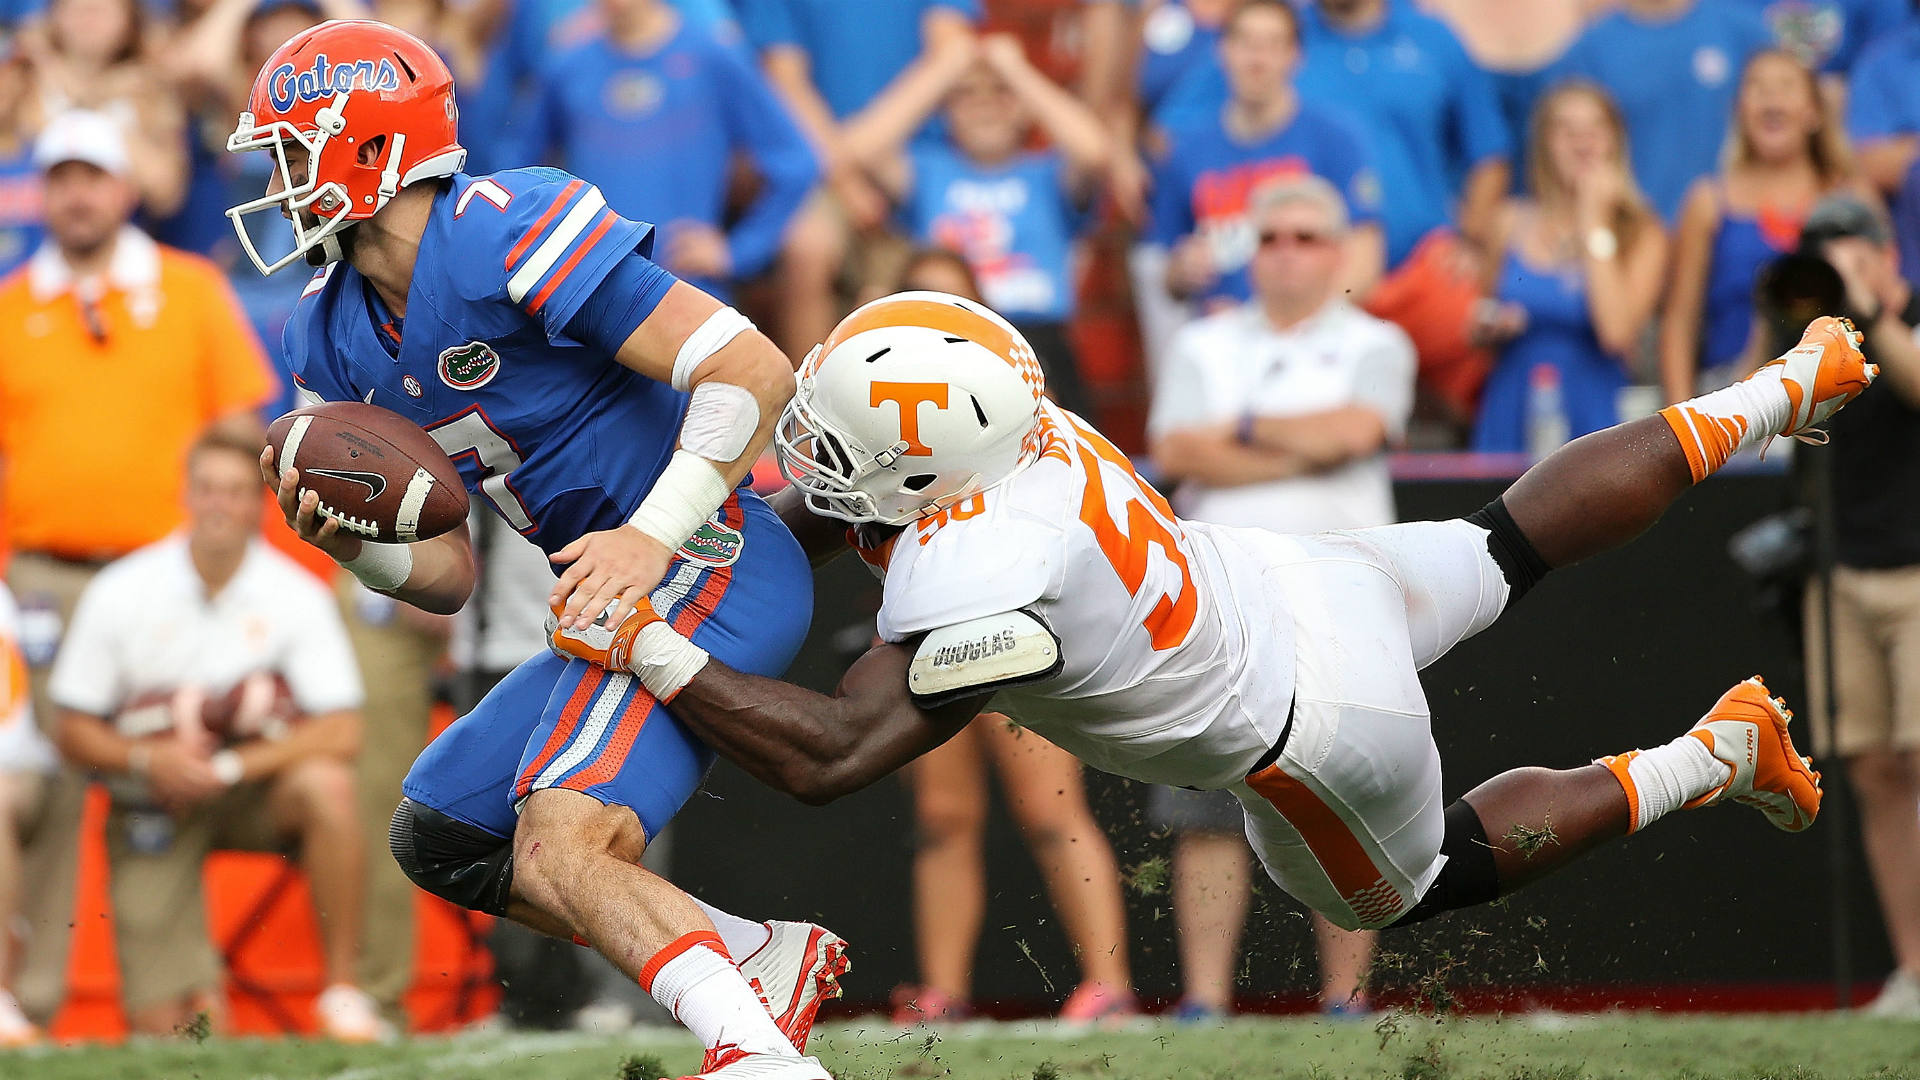 Will-Grier-UF-092815-getty-ftr